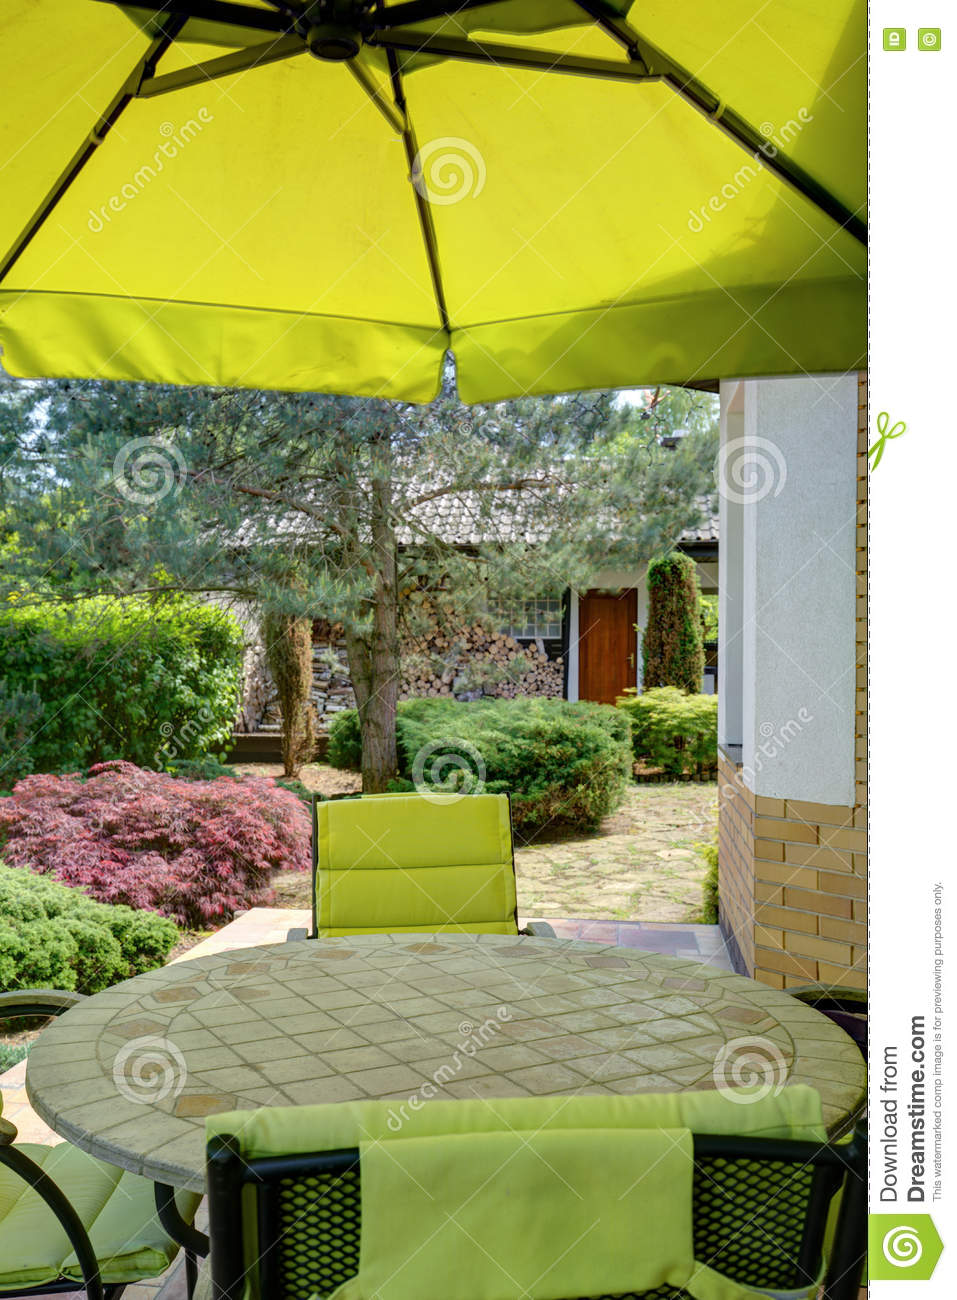 Terrace with functional furnitures stock image 70681945 - Cozy outdoor living spaces connecting mother nature ...